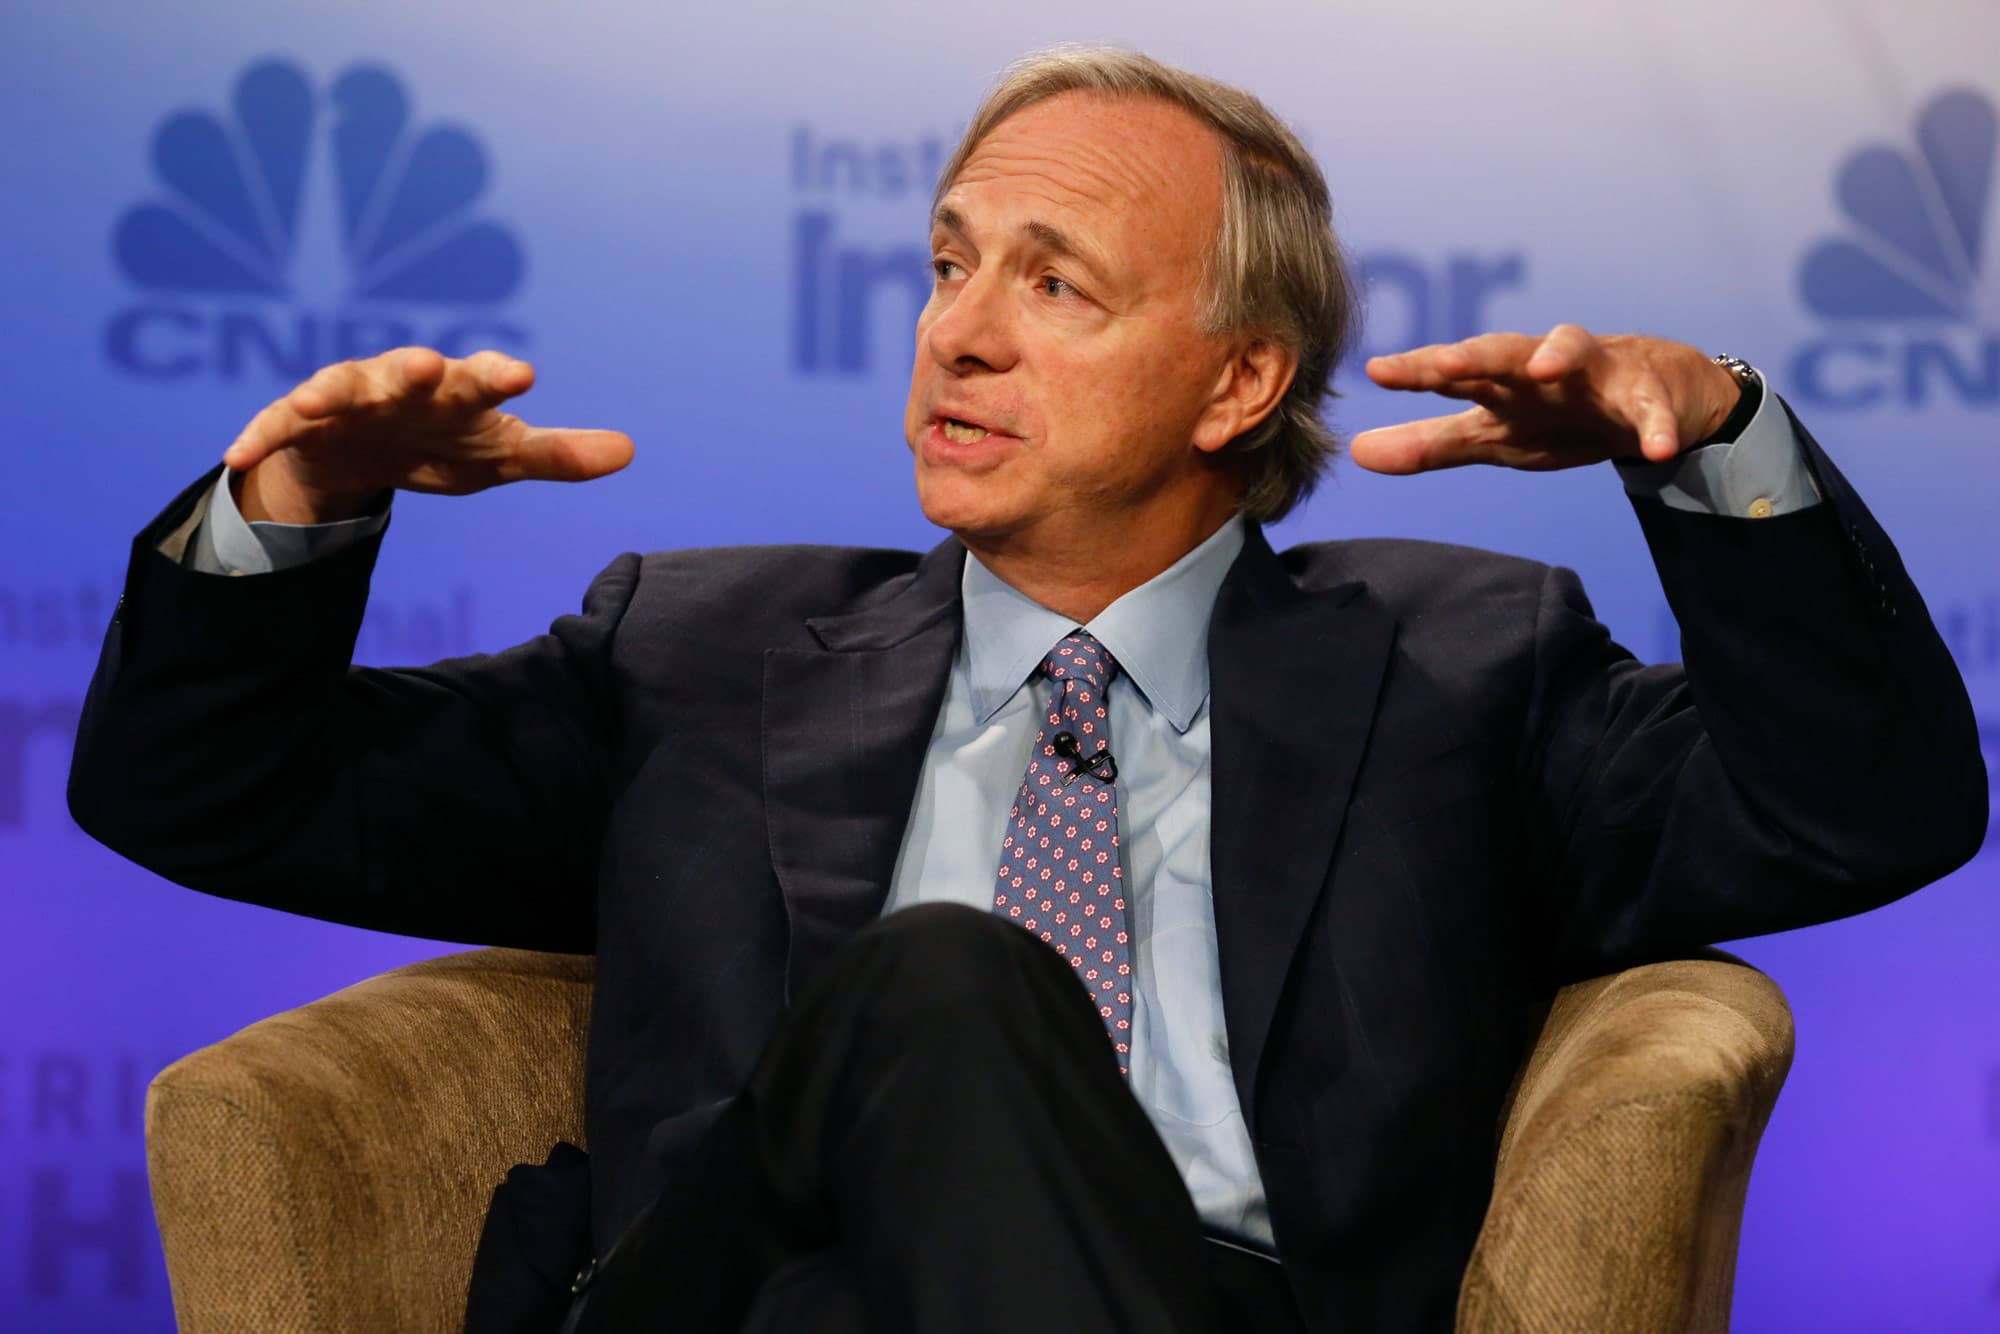 Billionaire Ray Dalio: U.S. economy must change or there will be 'conflict' between the rich and poor